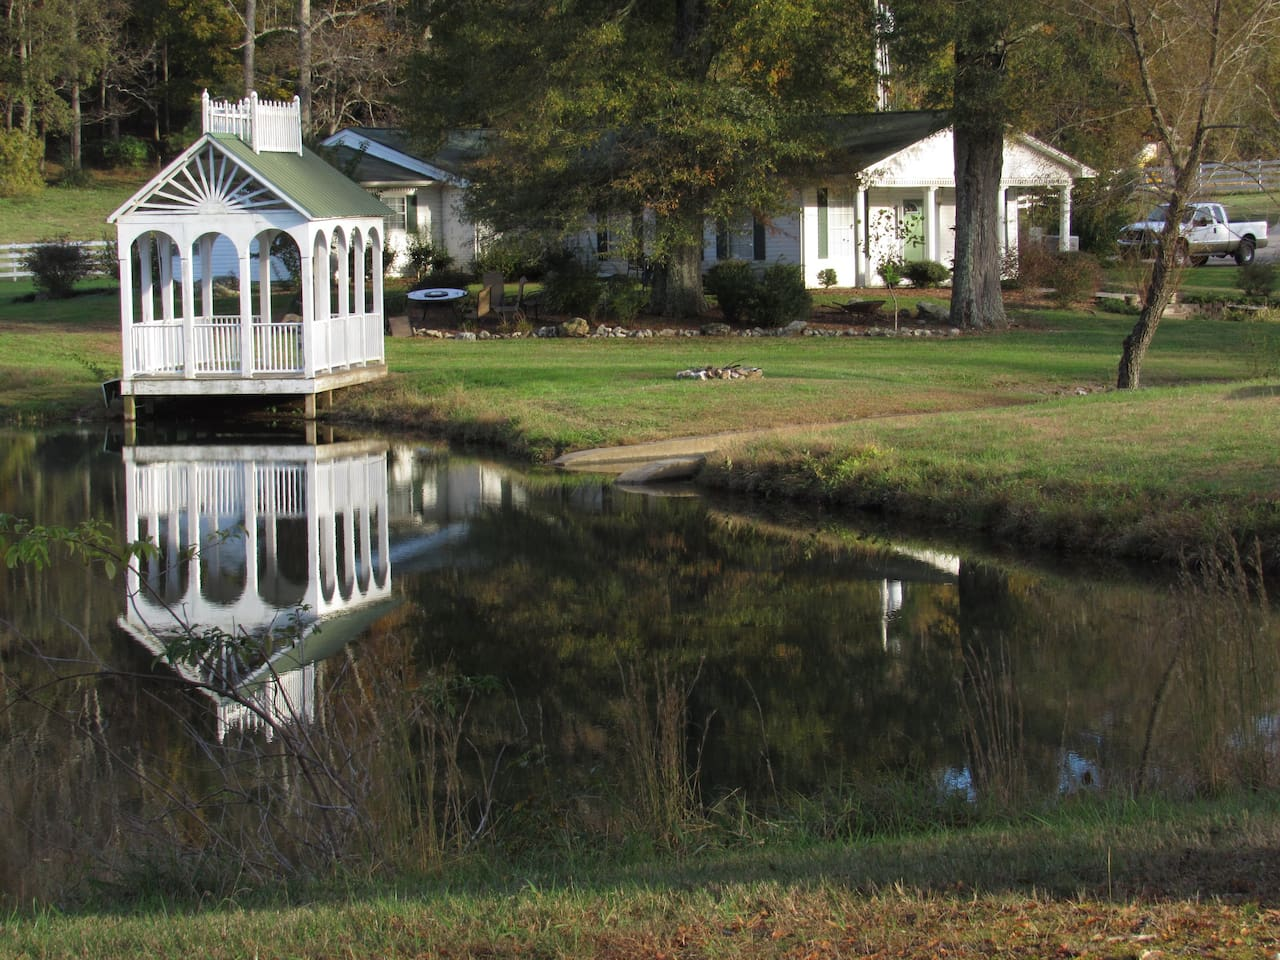 View from the driver's side as you travel down the winding driveway.  The gazebo overlooks the creek-fed lake. The single story ranch style guest house is directly in front of you once you cross over the creek spillway.